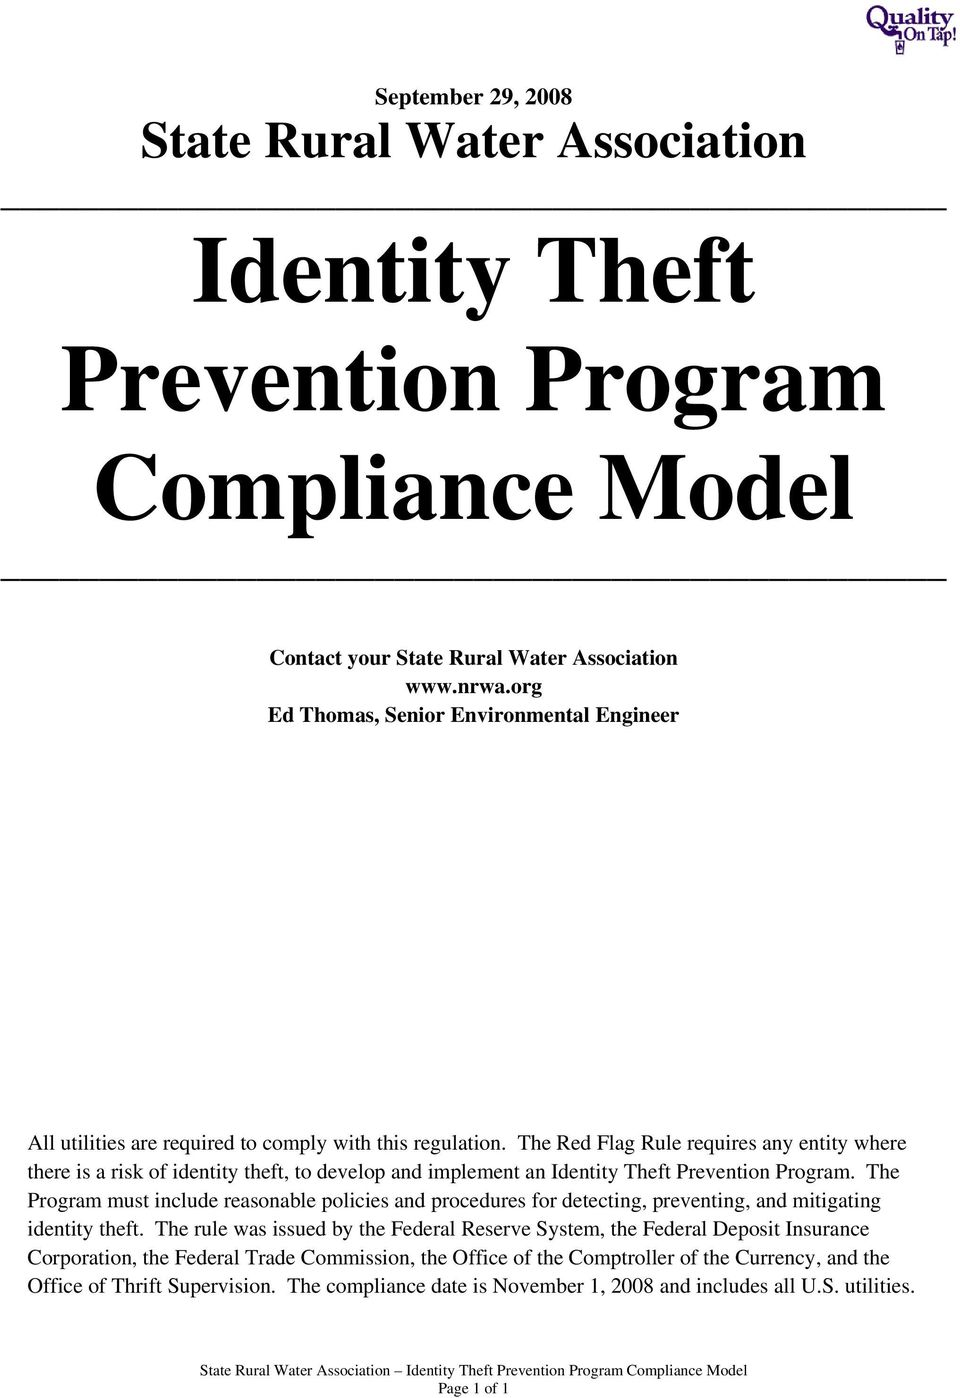 The Red Flag Rule requires any entity where there is a risk of identity theft, to develop and implement an Identity Theft Prevention Program.